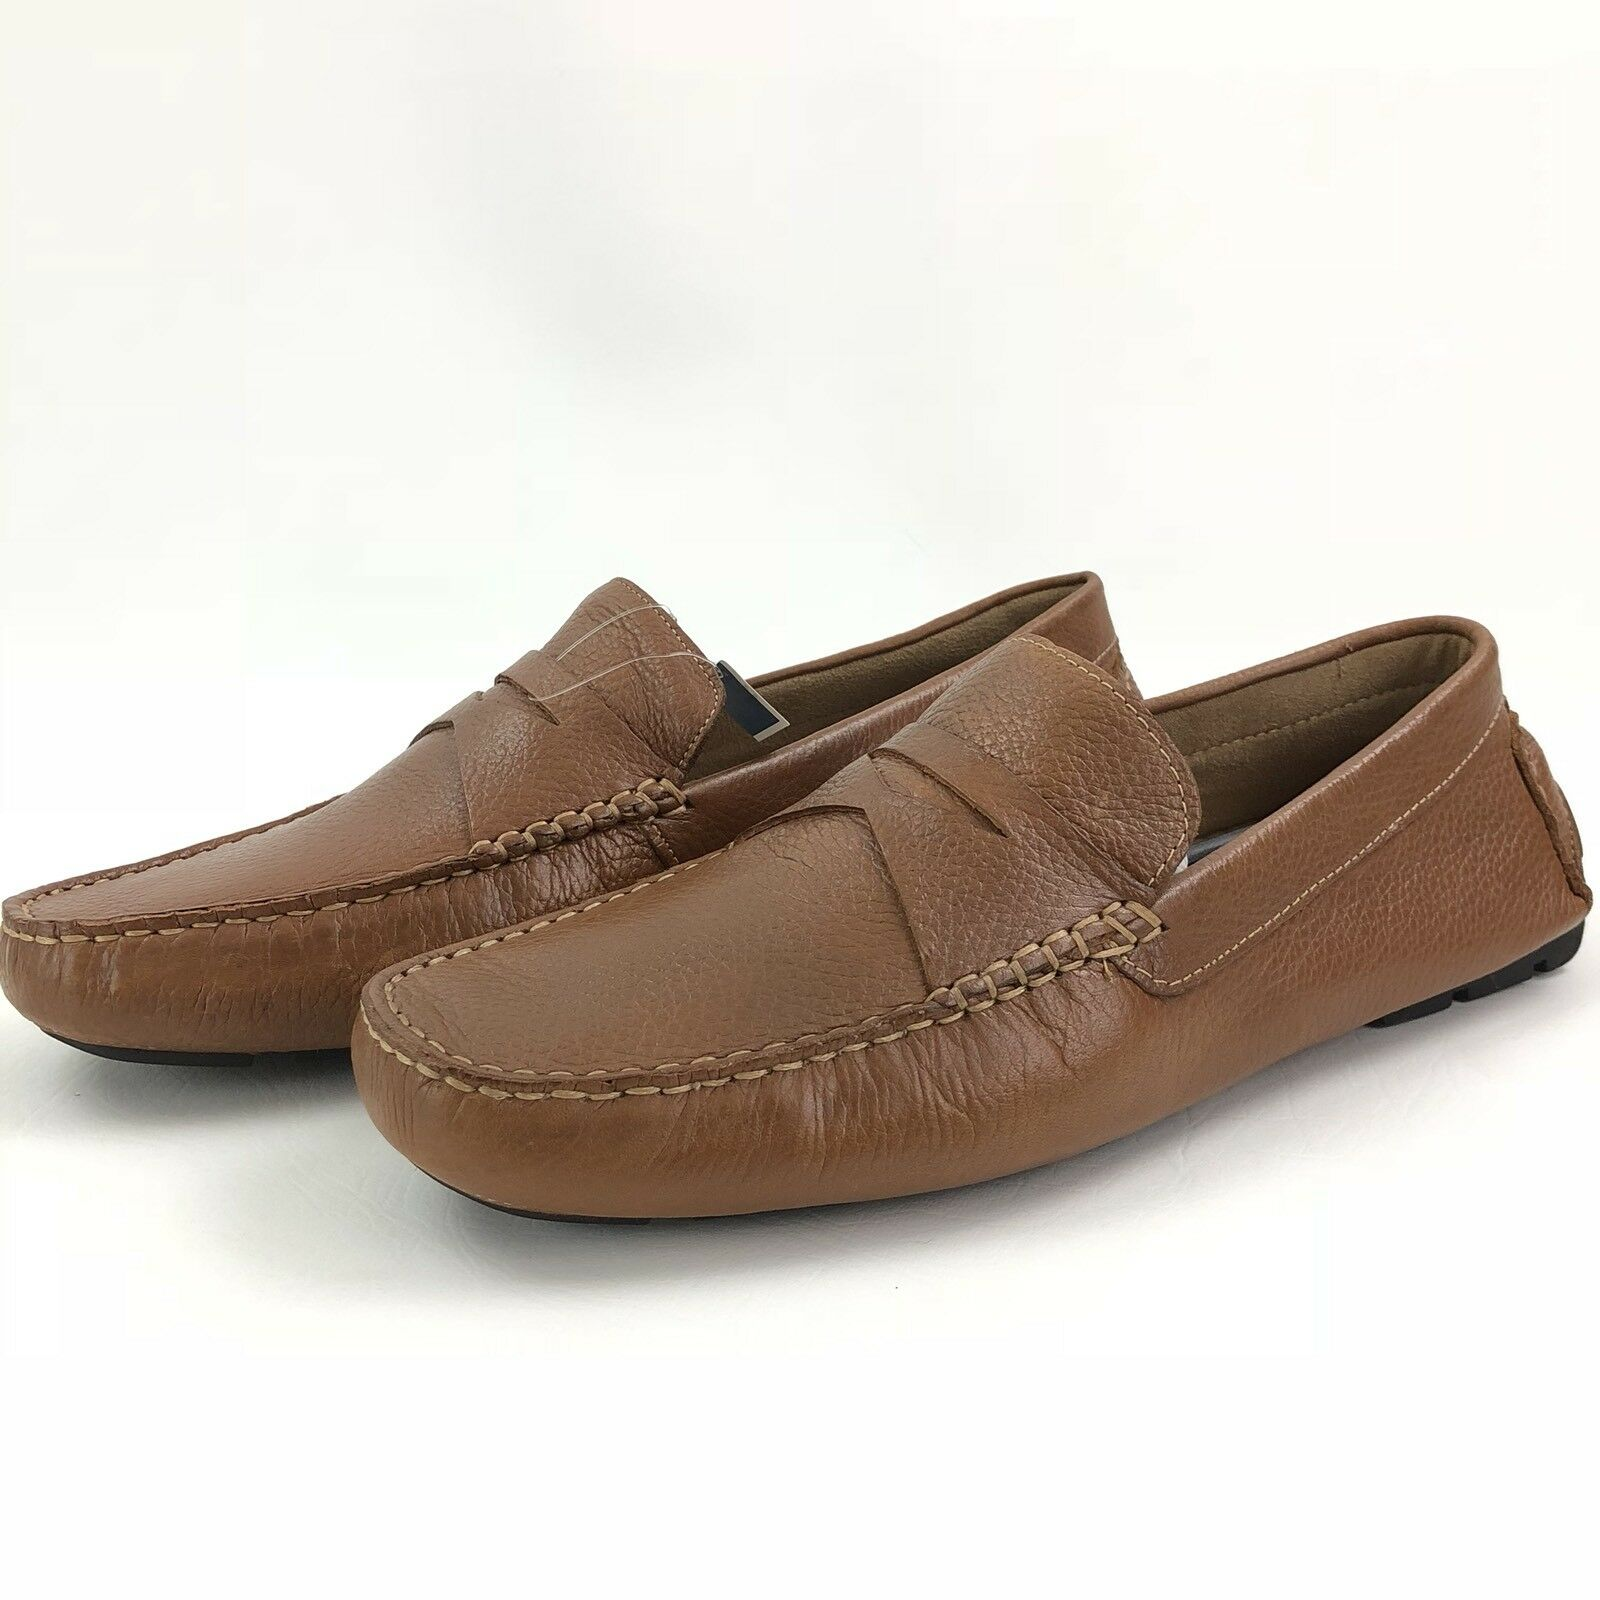 Donald Pliner Alondro Brown Calf Leather Driving Penny Loafer Brown Size 9 New